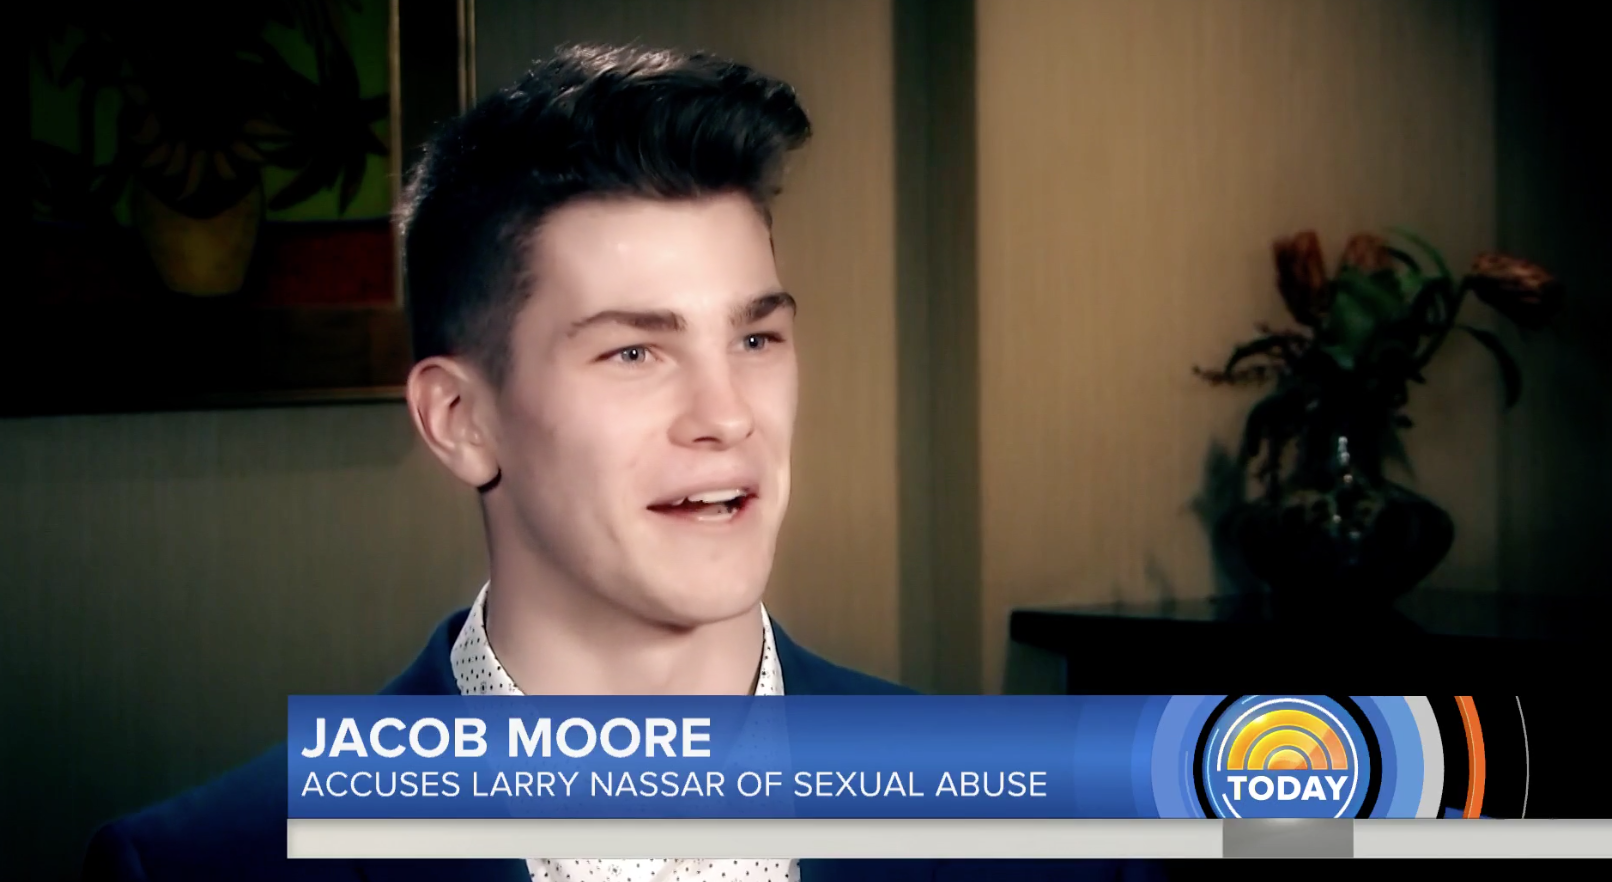 Jacob Moore, the first male gymnast to accuse former USA Gymnastics doctor Larry Nassar of sexual abuse, spoke out to NBC's Today show